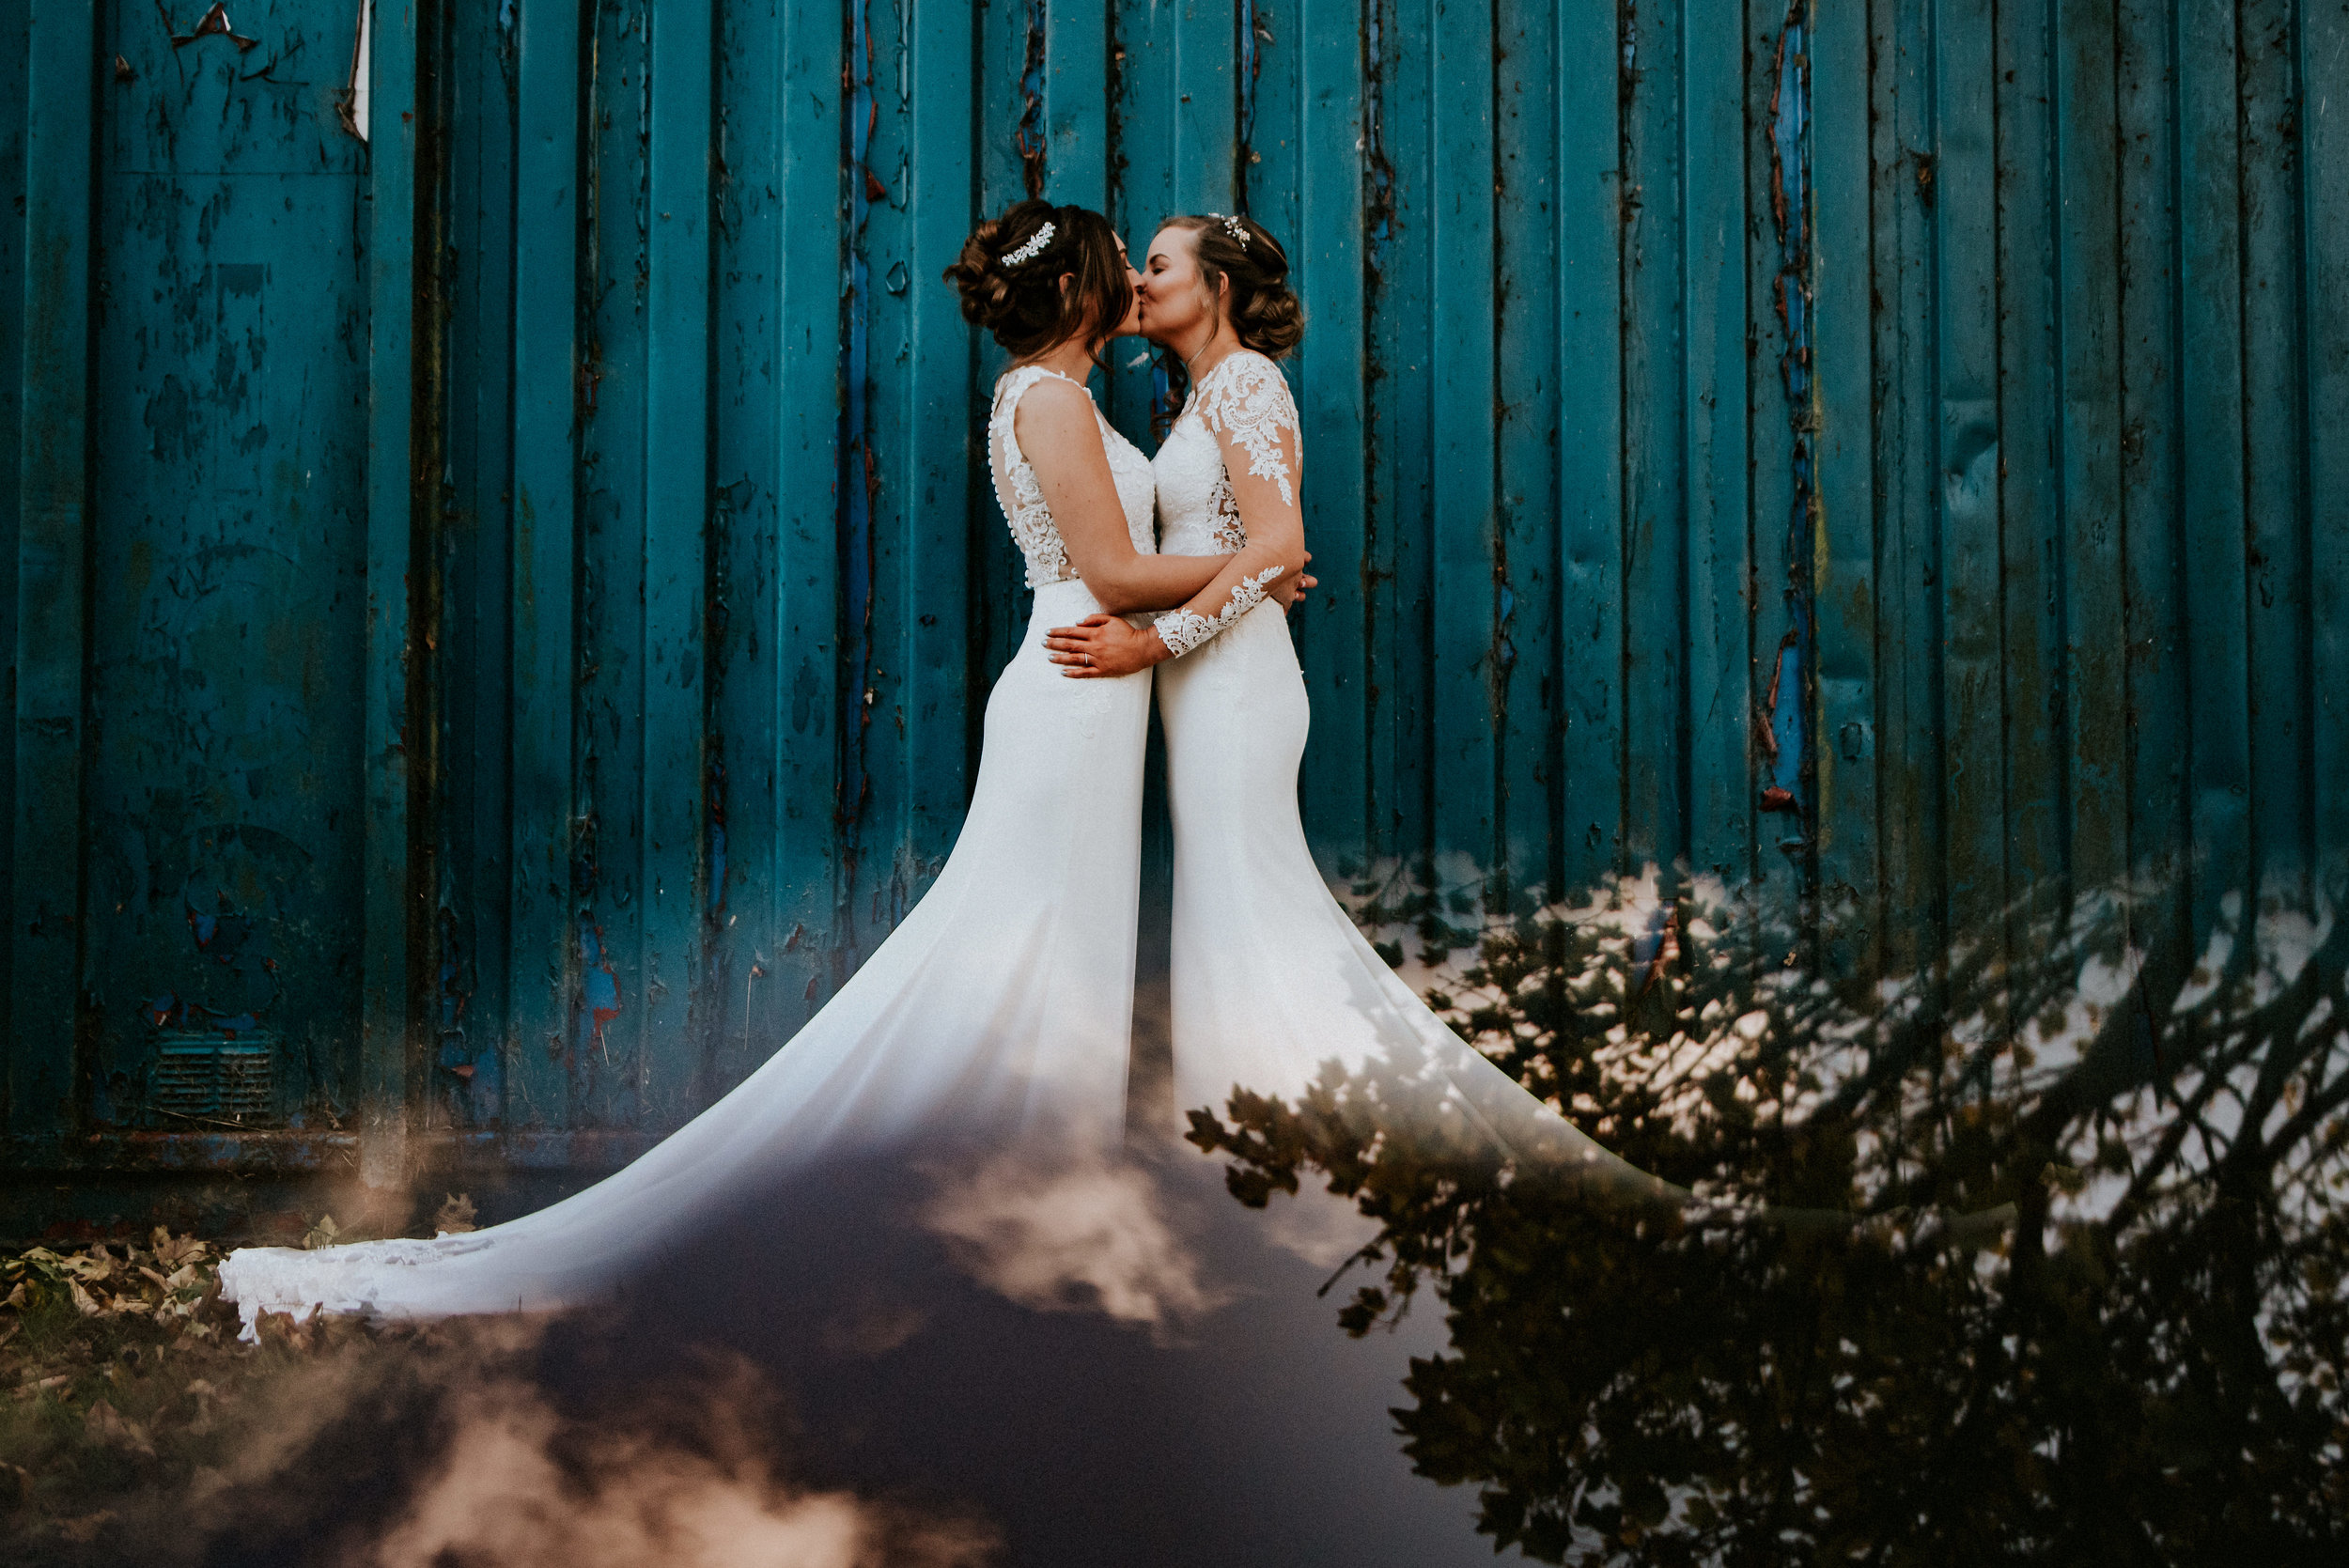 A Wakefield wedding at Lakeside Ponderosa with two brides. Zoo animals & two beautiful dresses, braving the cold in creative portraits amidst eclectic grounds